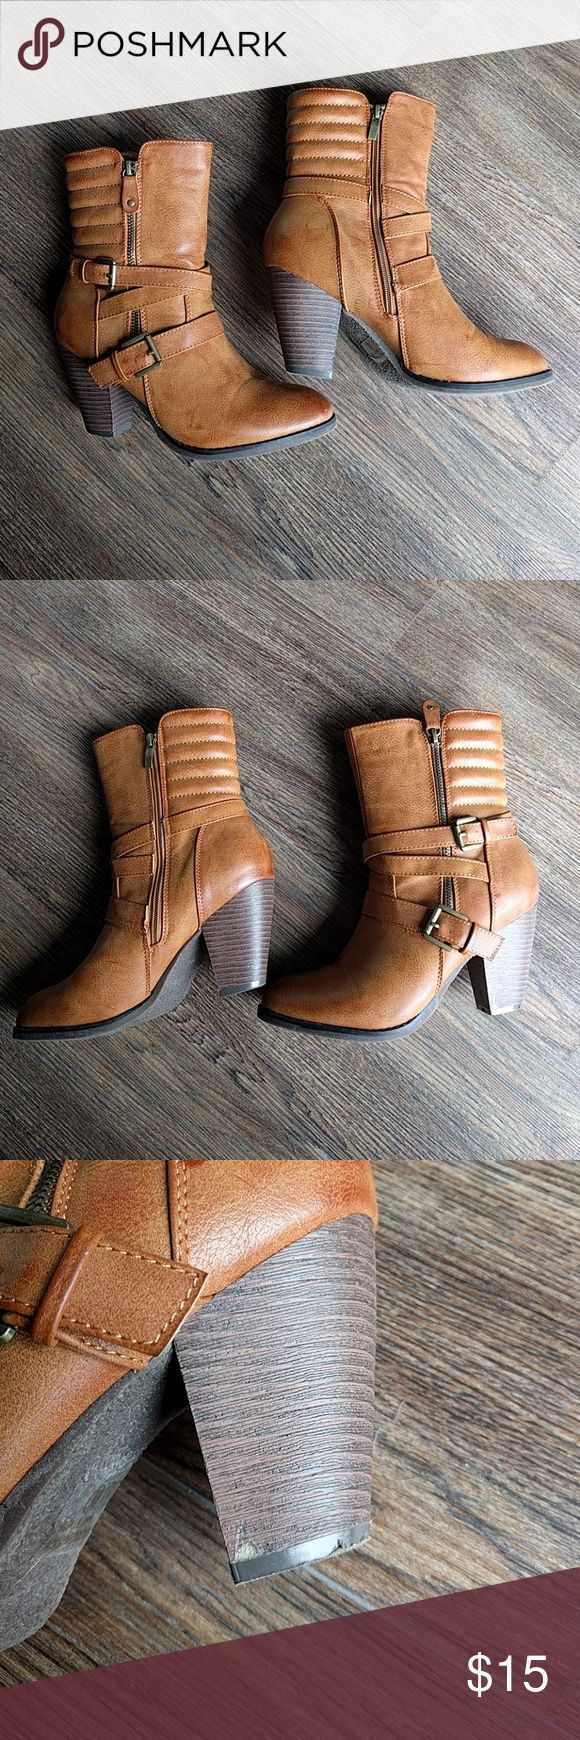 Brown womens boots size 8.5 Camel brown with orange undertones. Only worn once. Very slight flaws show in pics. One small scuff on toe and one on heel. Overall great condition. Fits true to size. Nature breeze brand Shoes Ankle Boots & Booties